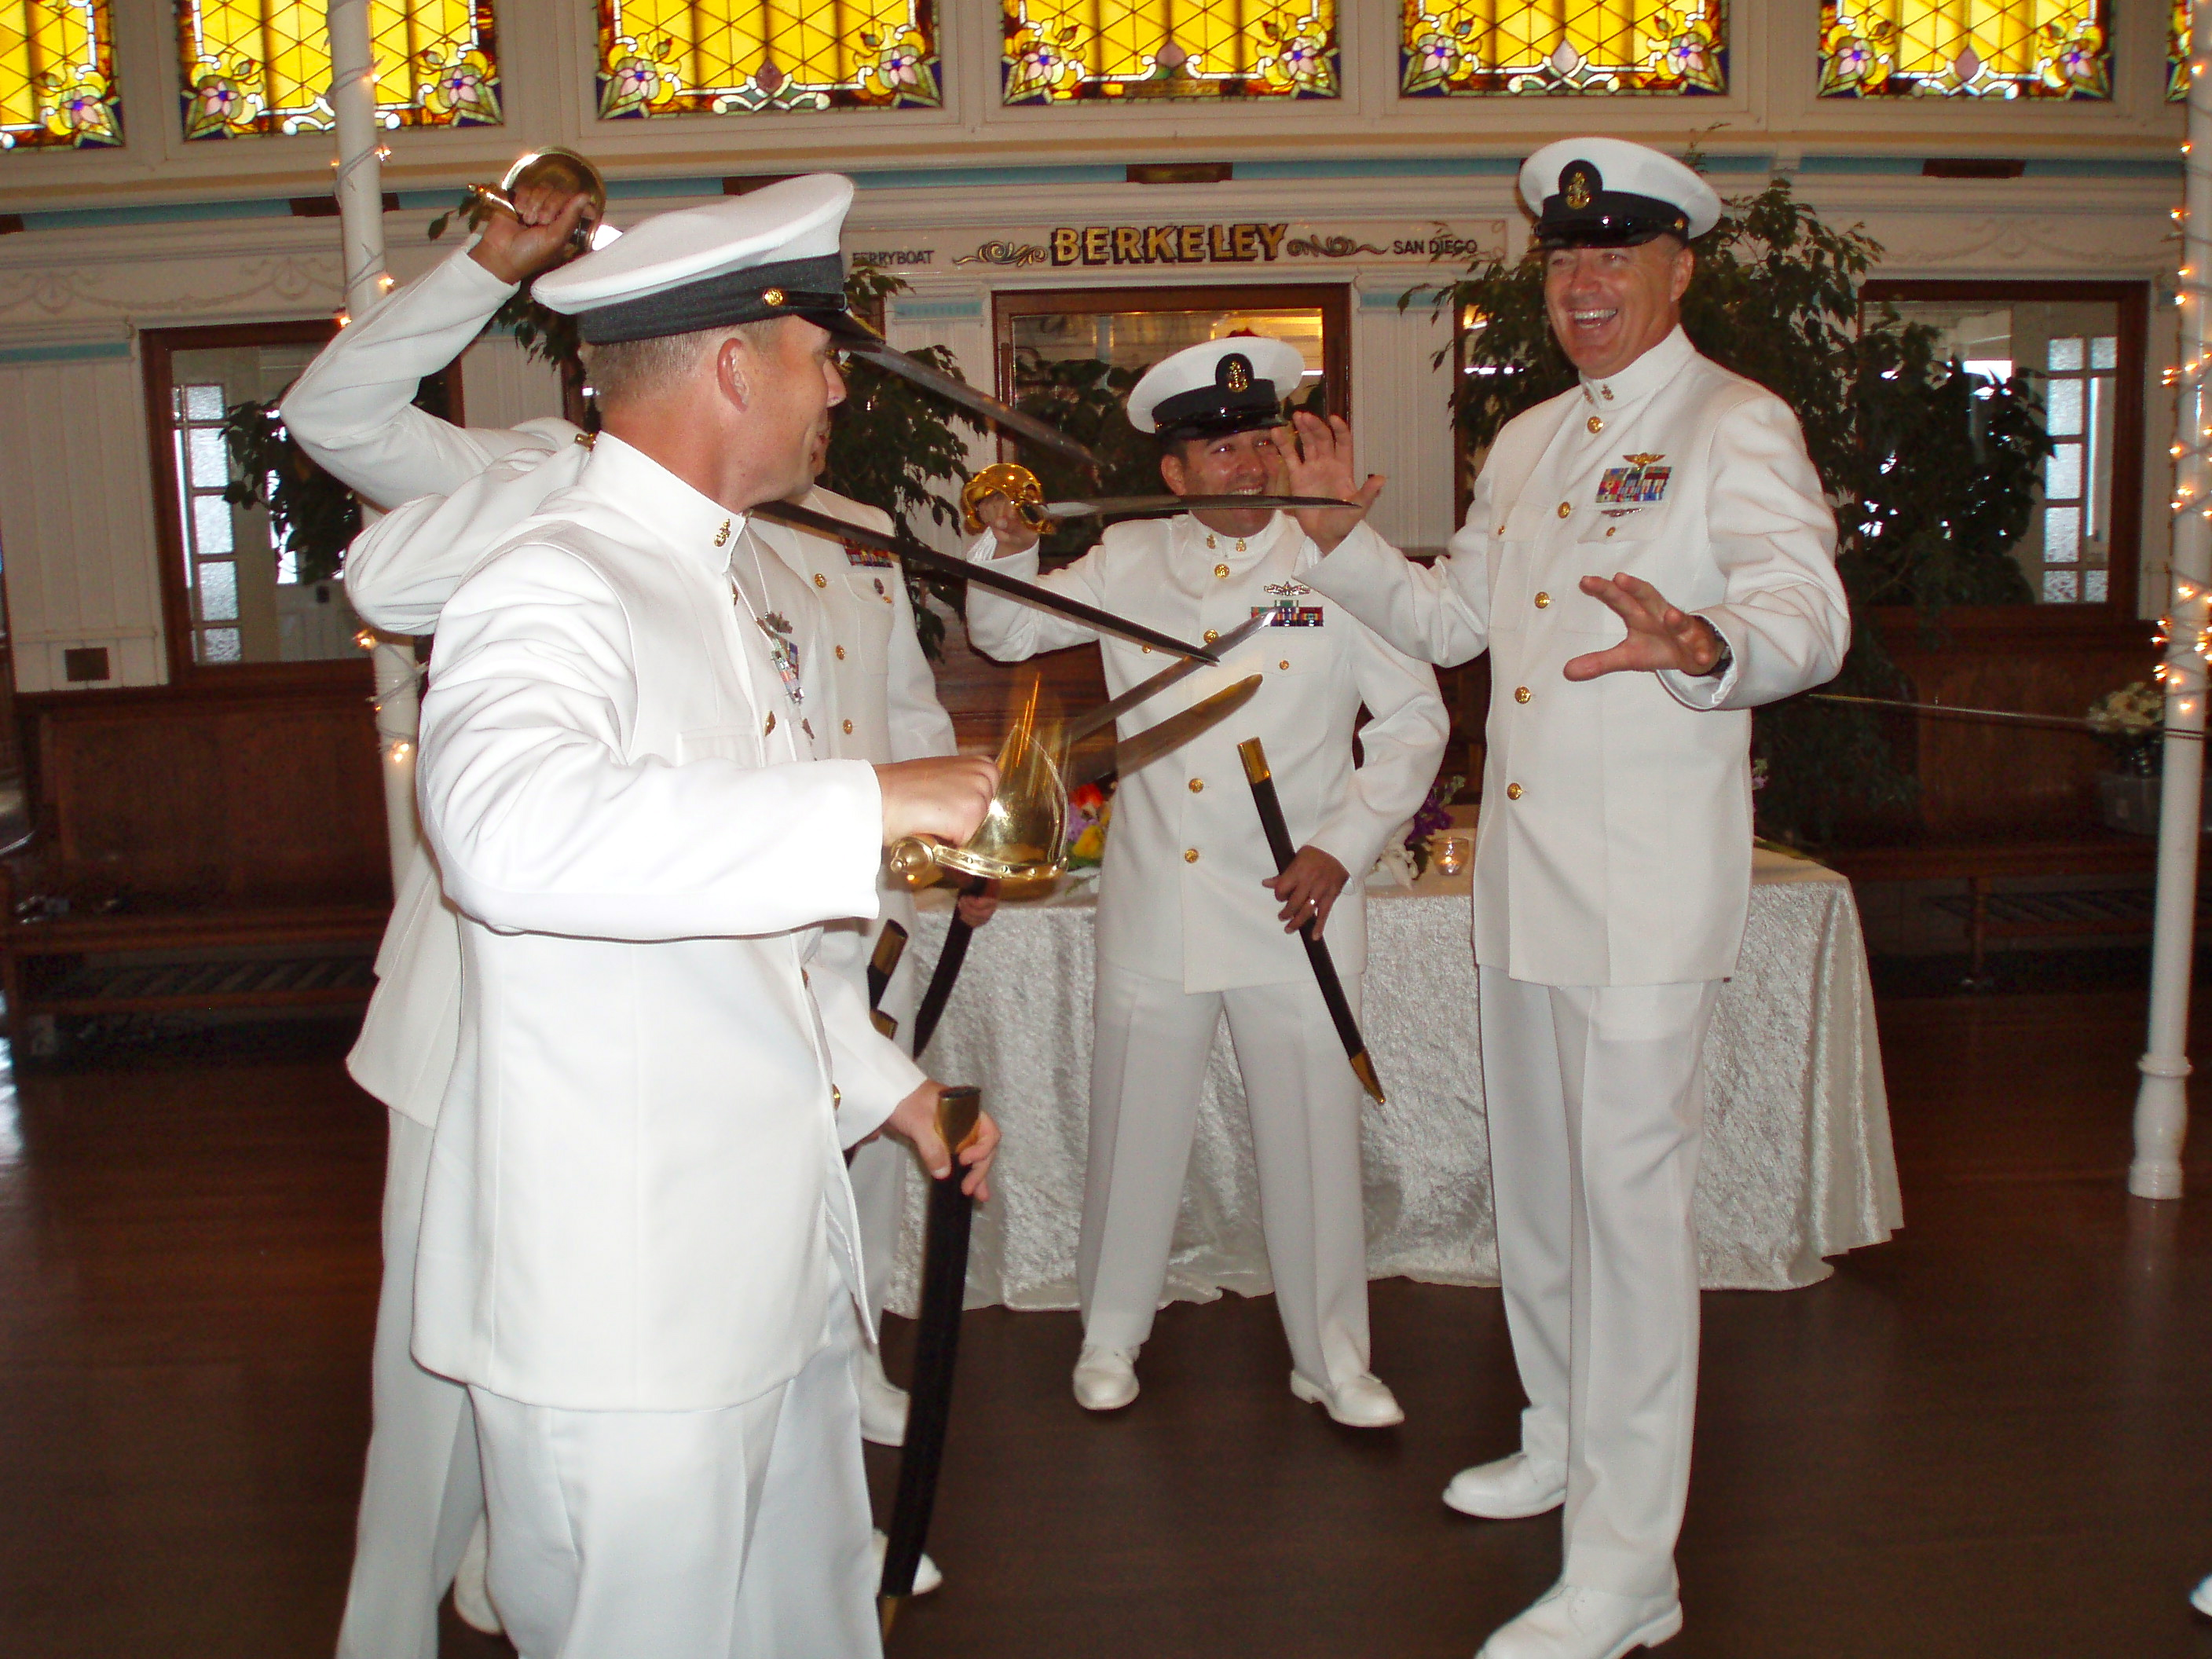 The groomsmen in Navy uniform practiced their sword arch and chatted with